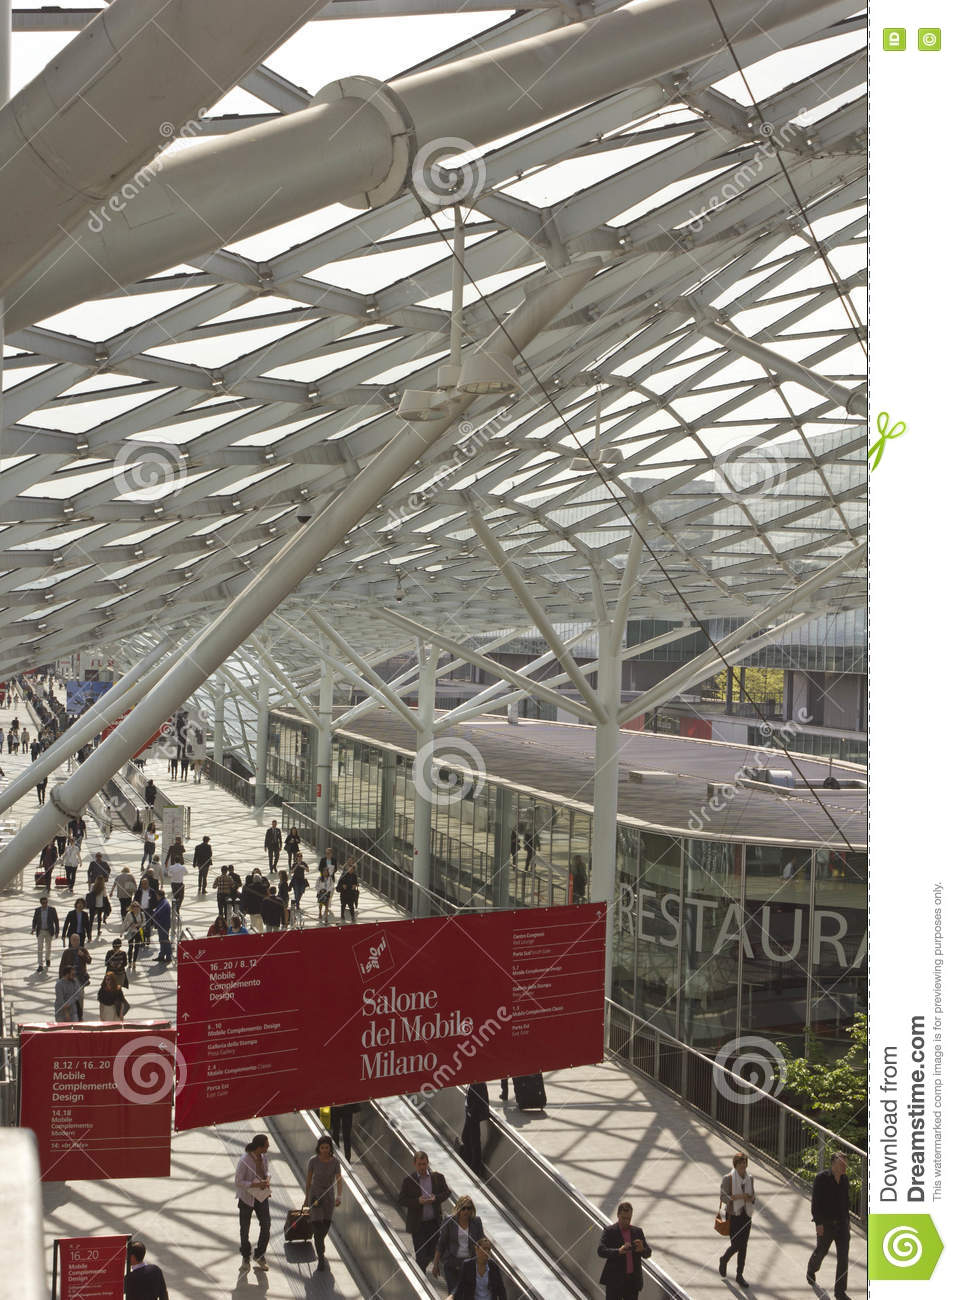 Architectural view of the covered glass roof of Fiera Milano